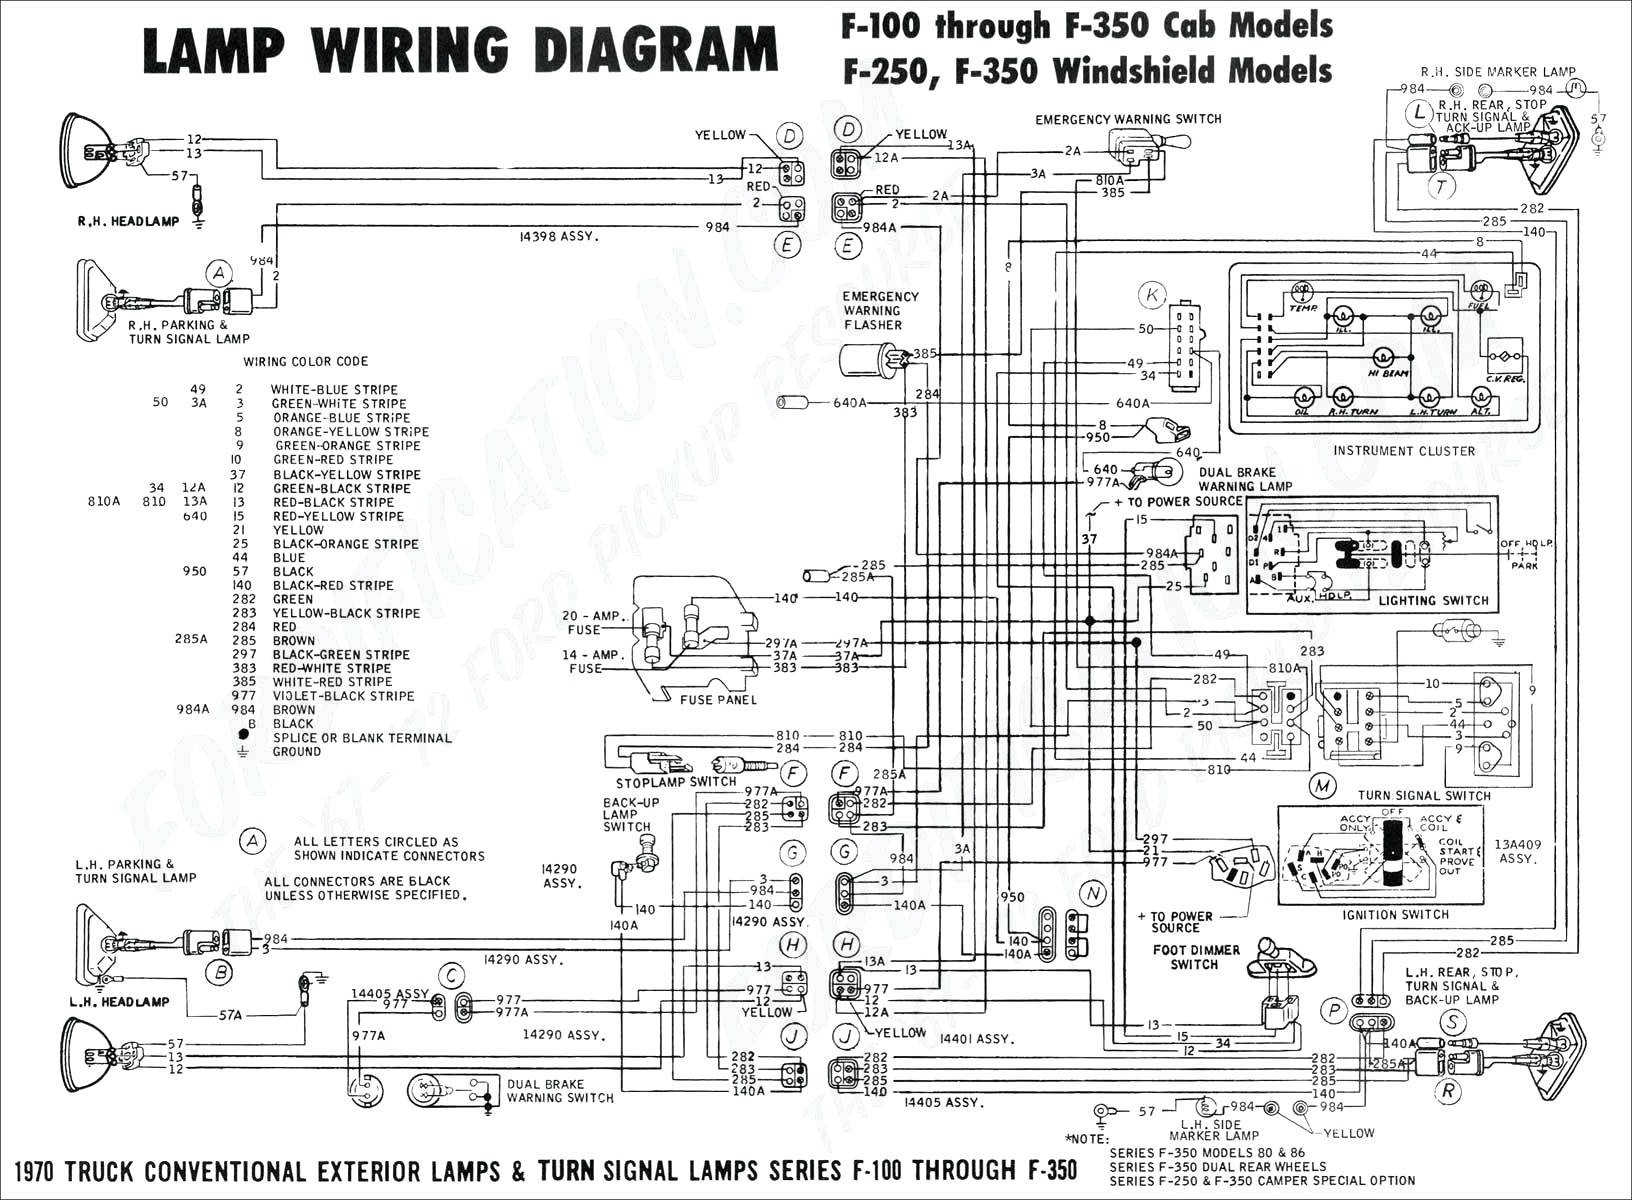 garmin 740s wiring diagram